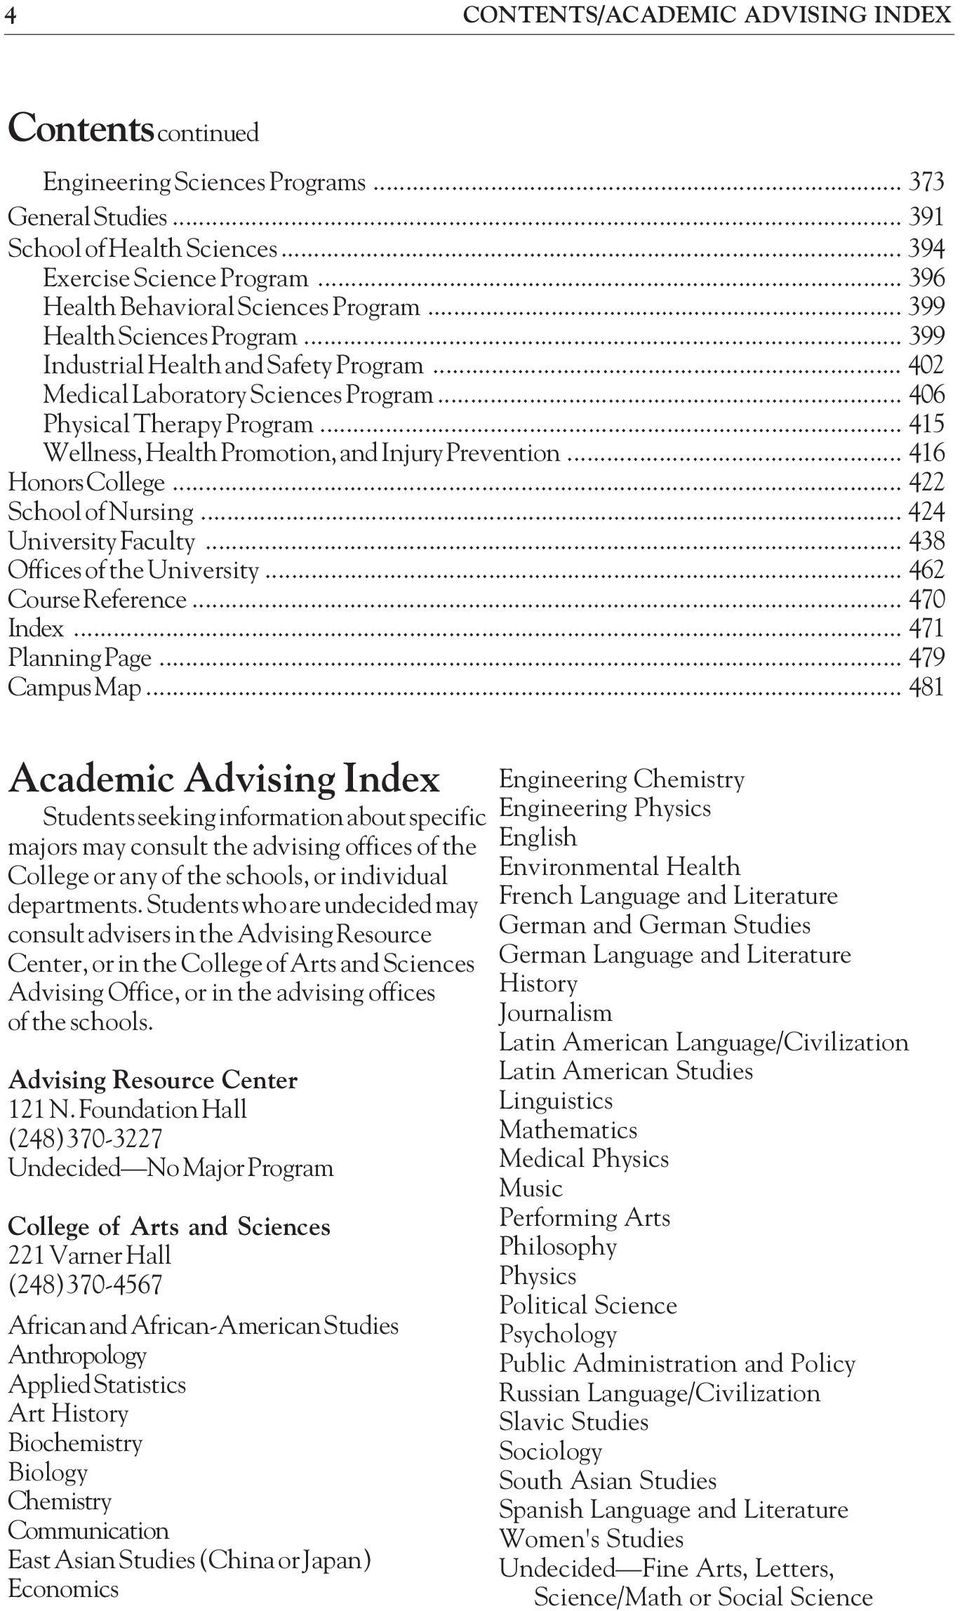 .. 415 Wellness, Health Promotion, and Injury Prevention... 416 Honors College... 422 School of Nursing... 424 University Faculty... 438 Offices of the University... 462 Course Reference... 470 Index.